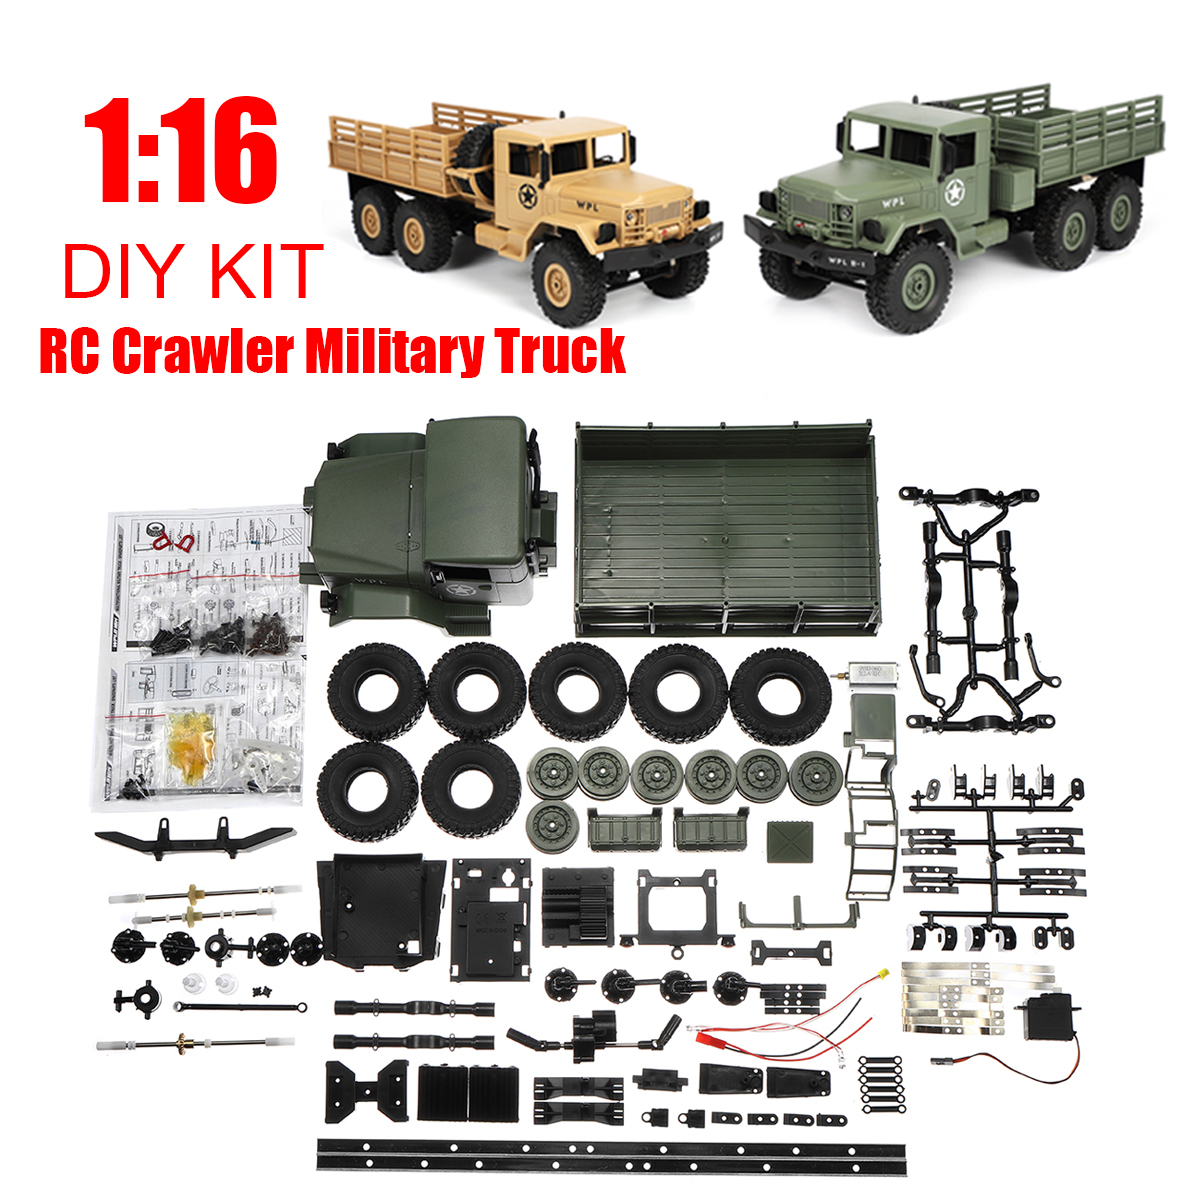 DIY Kit B16 1:16 2.4G 6 Wheels RC Crawler Military Truck Off-Road Car Toy Yellow/Green Drive Lights Excellent Climbing Ability